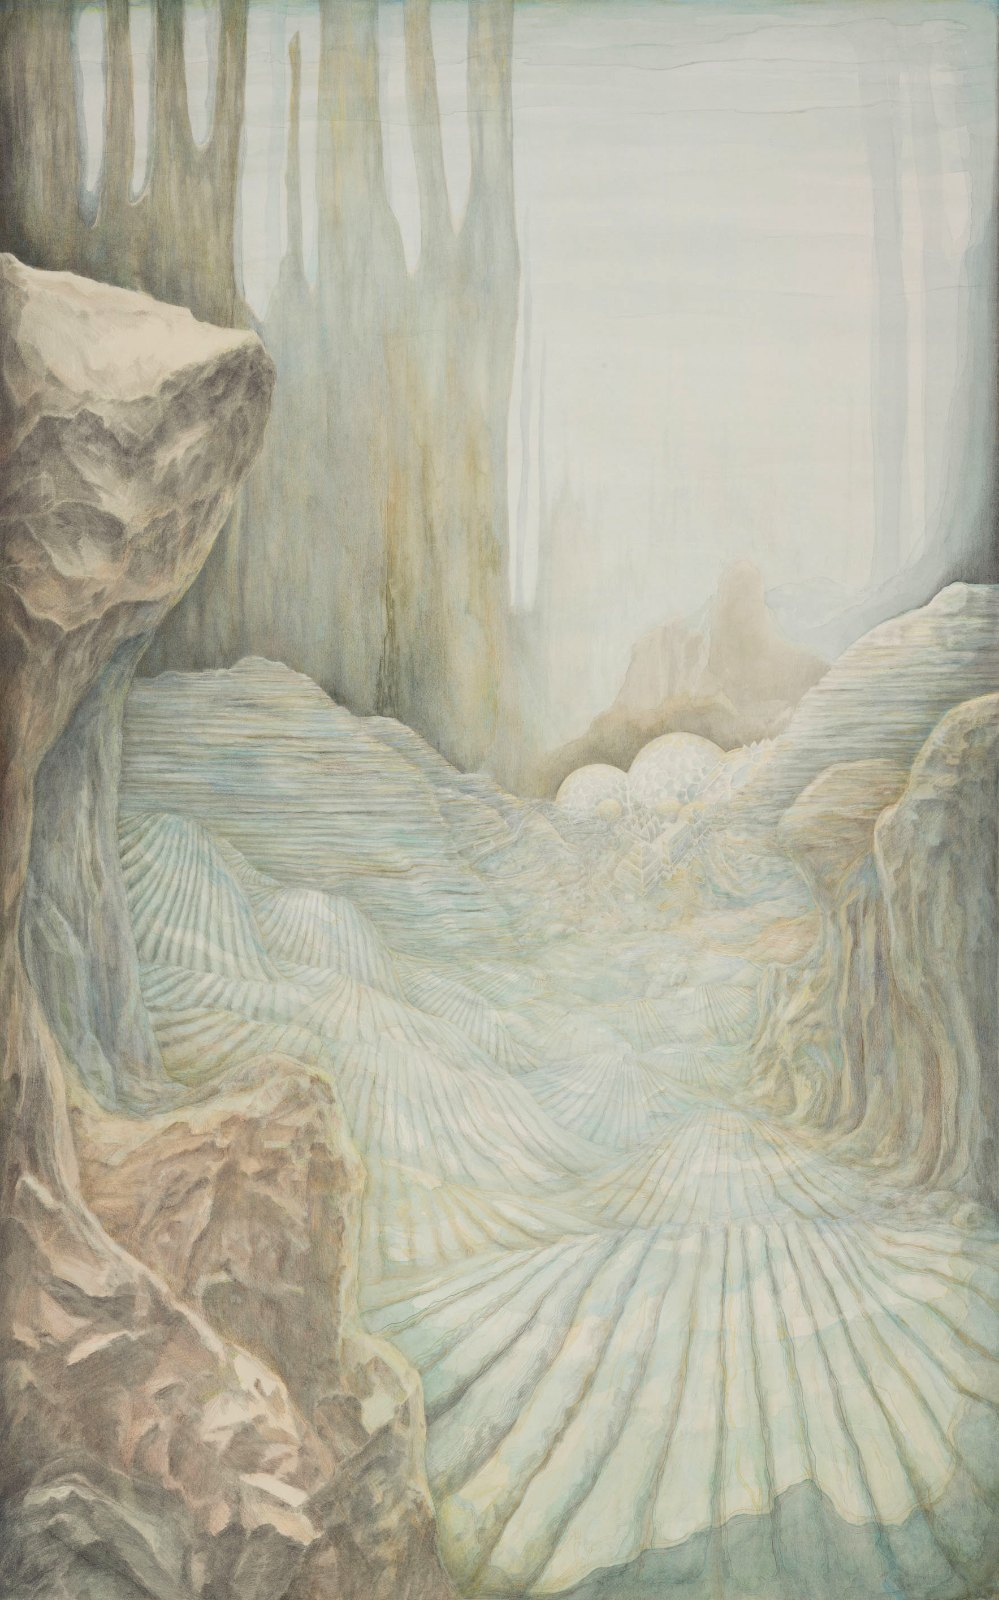 Atlantis Biosfärer, 2013, watercolour and water-soluble colour pencil on paper, 146 x 91,5 cm